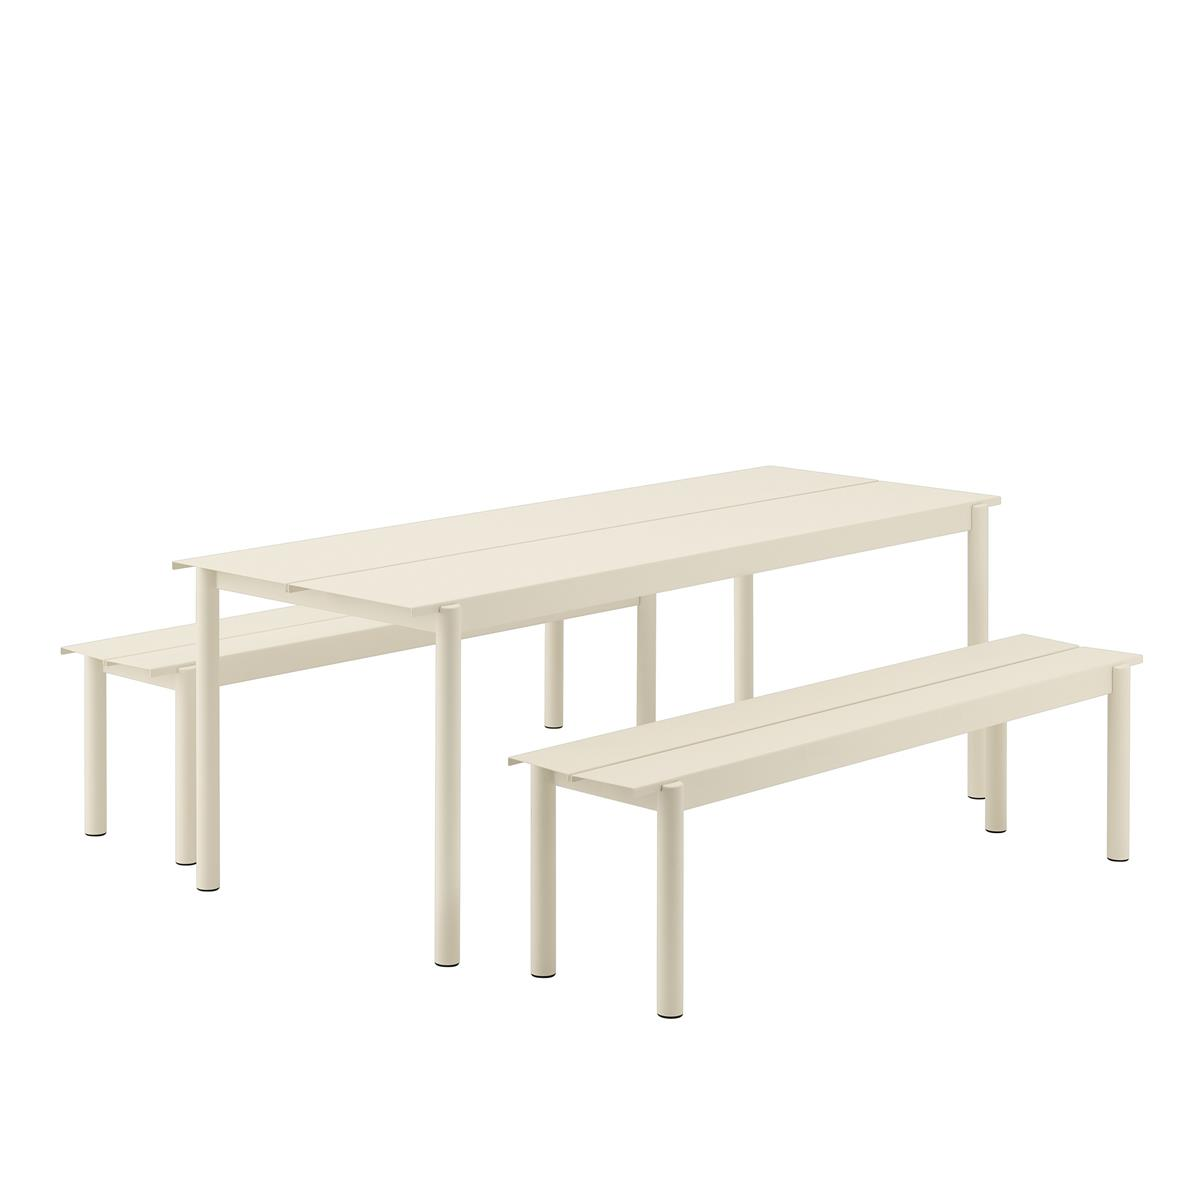 Linear Steel Table 200 x 75 med 2 Stk. Linear Steel Bench L:170. Off-White.